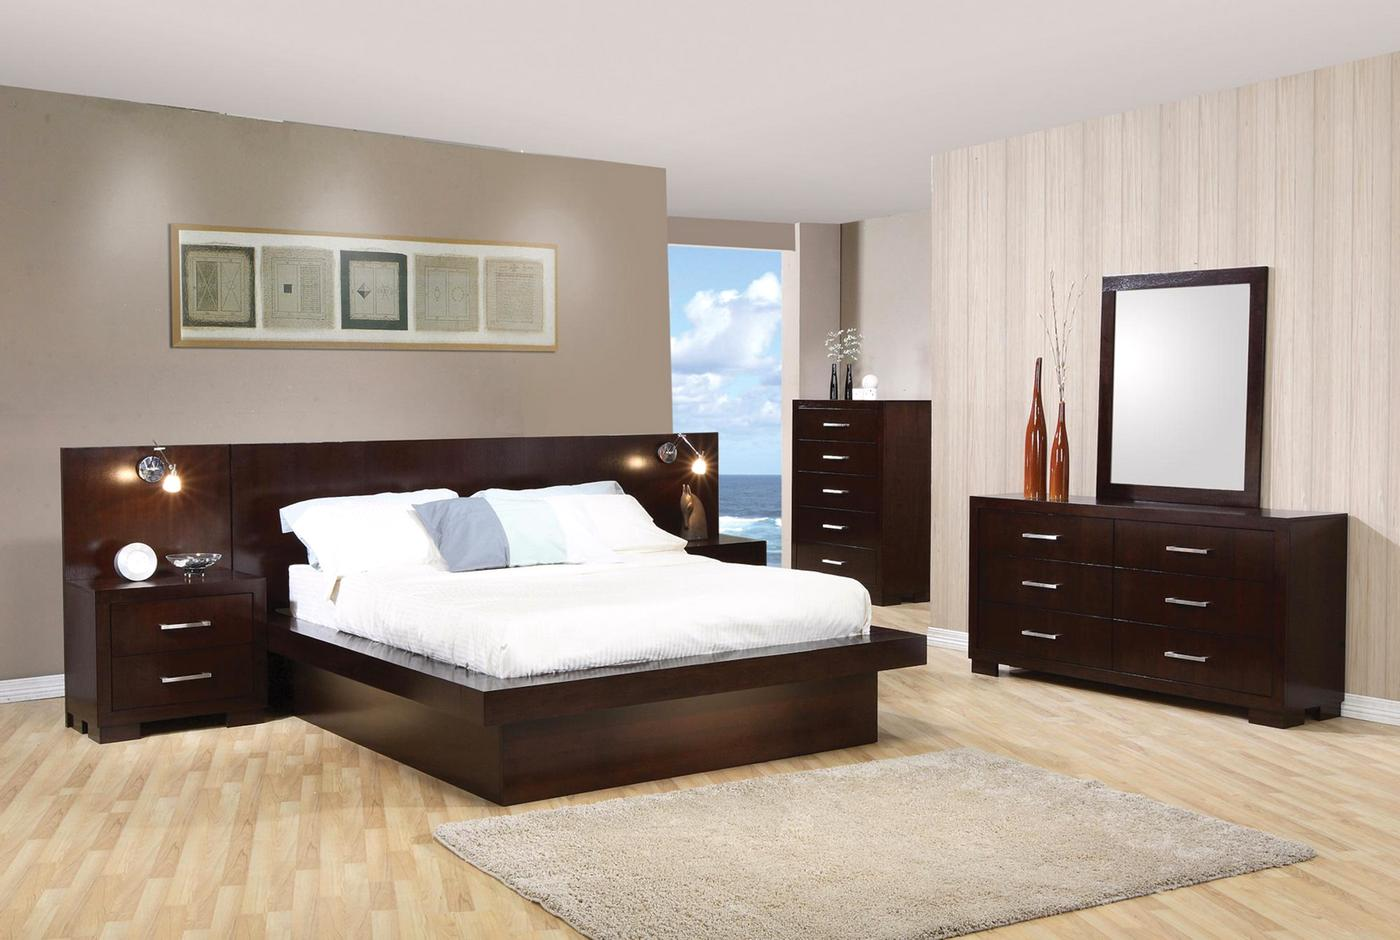 Jessica modern platform cappuccino finish bedroom set free shipping for Contemporary bedroom furniture